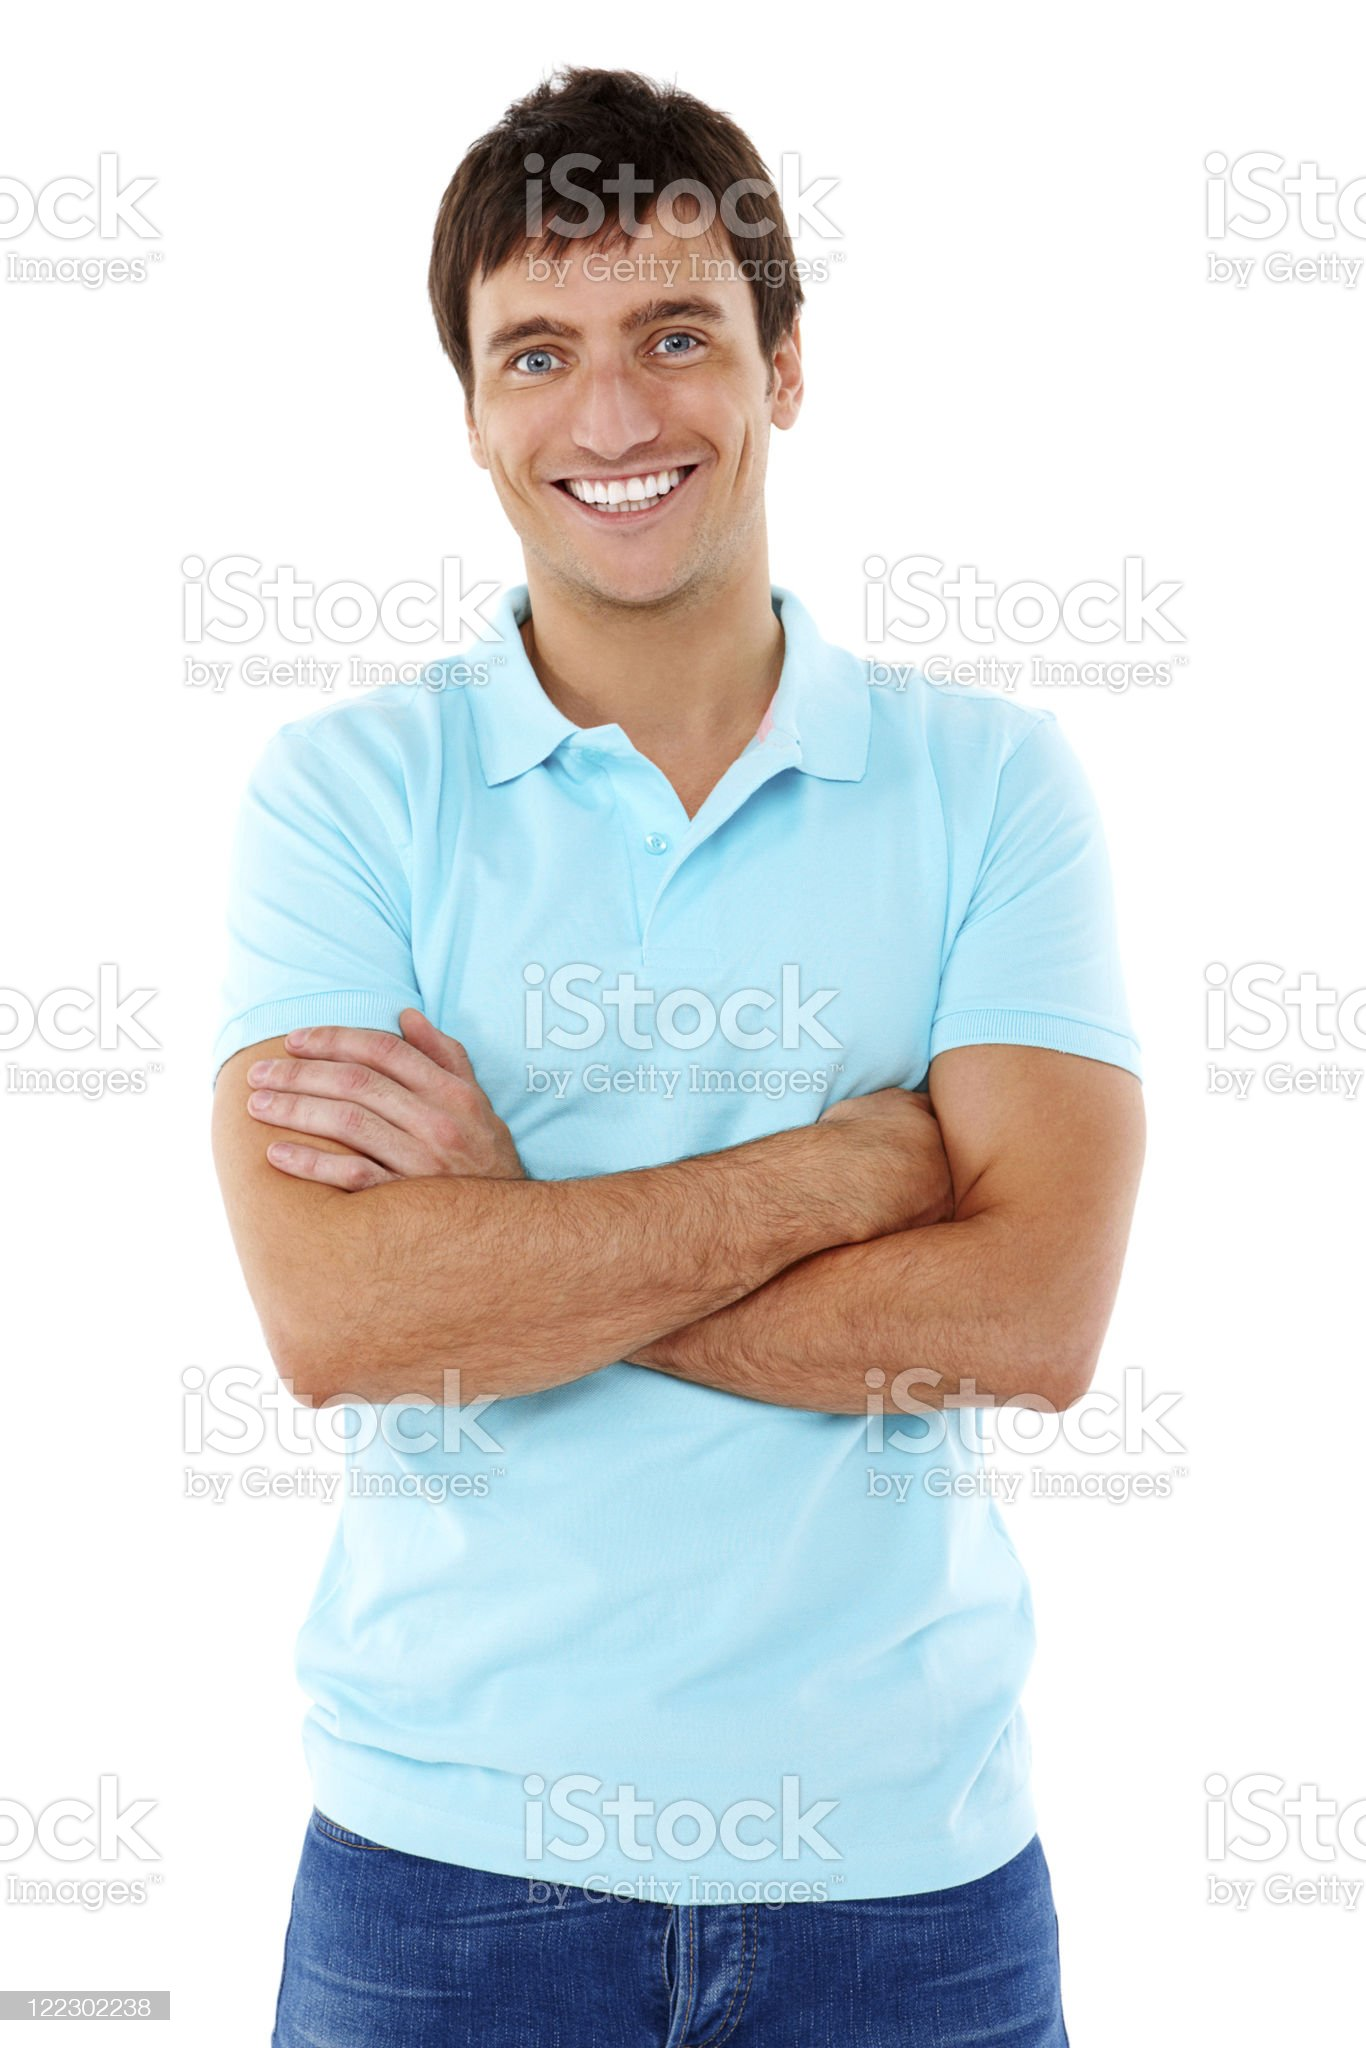 Young Man Posing in a Blue Shirt - Isolated royalty-free stock photo